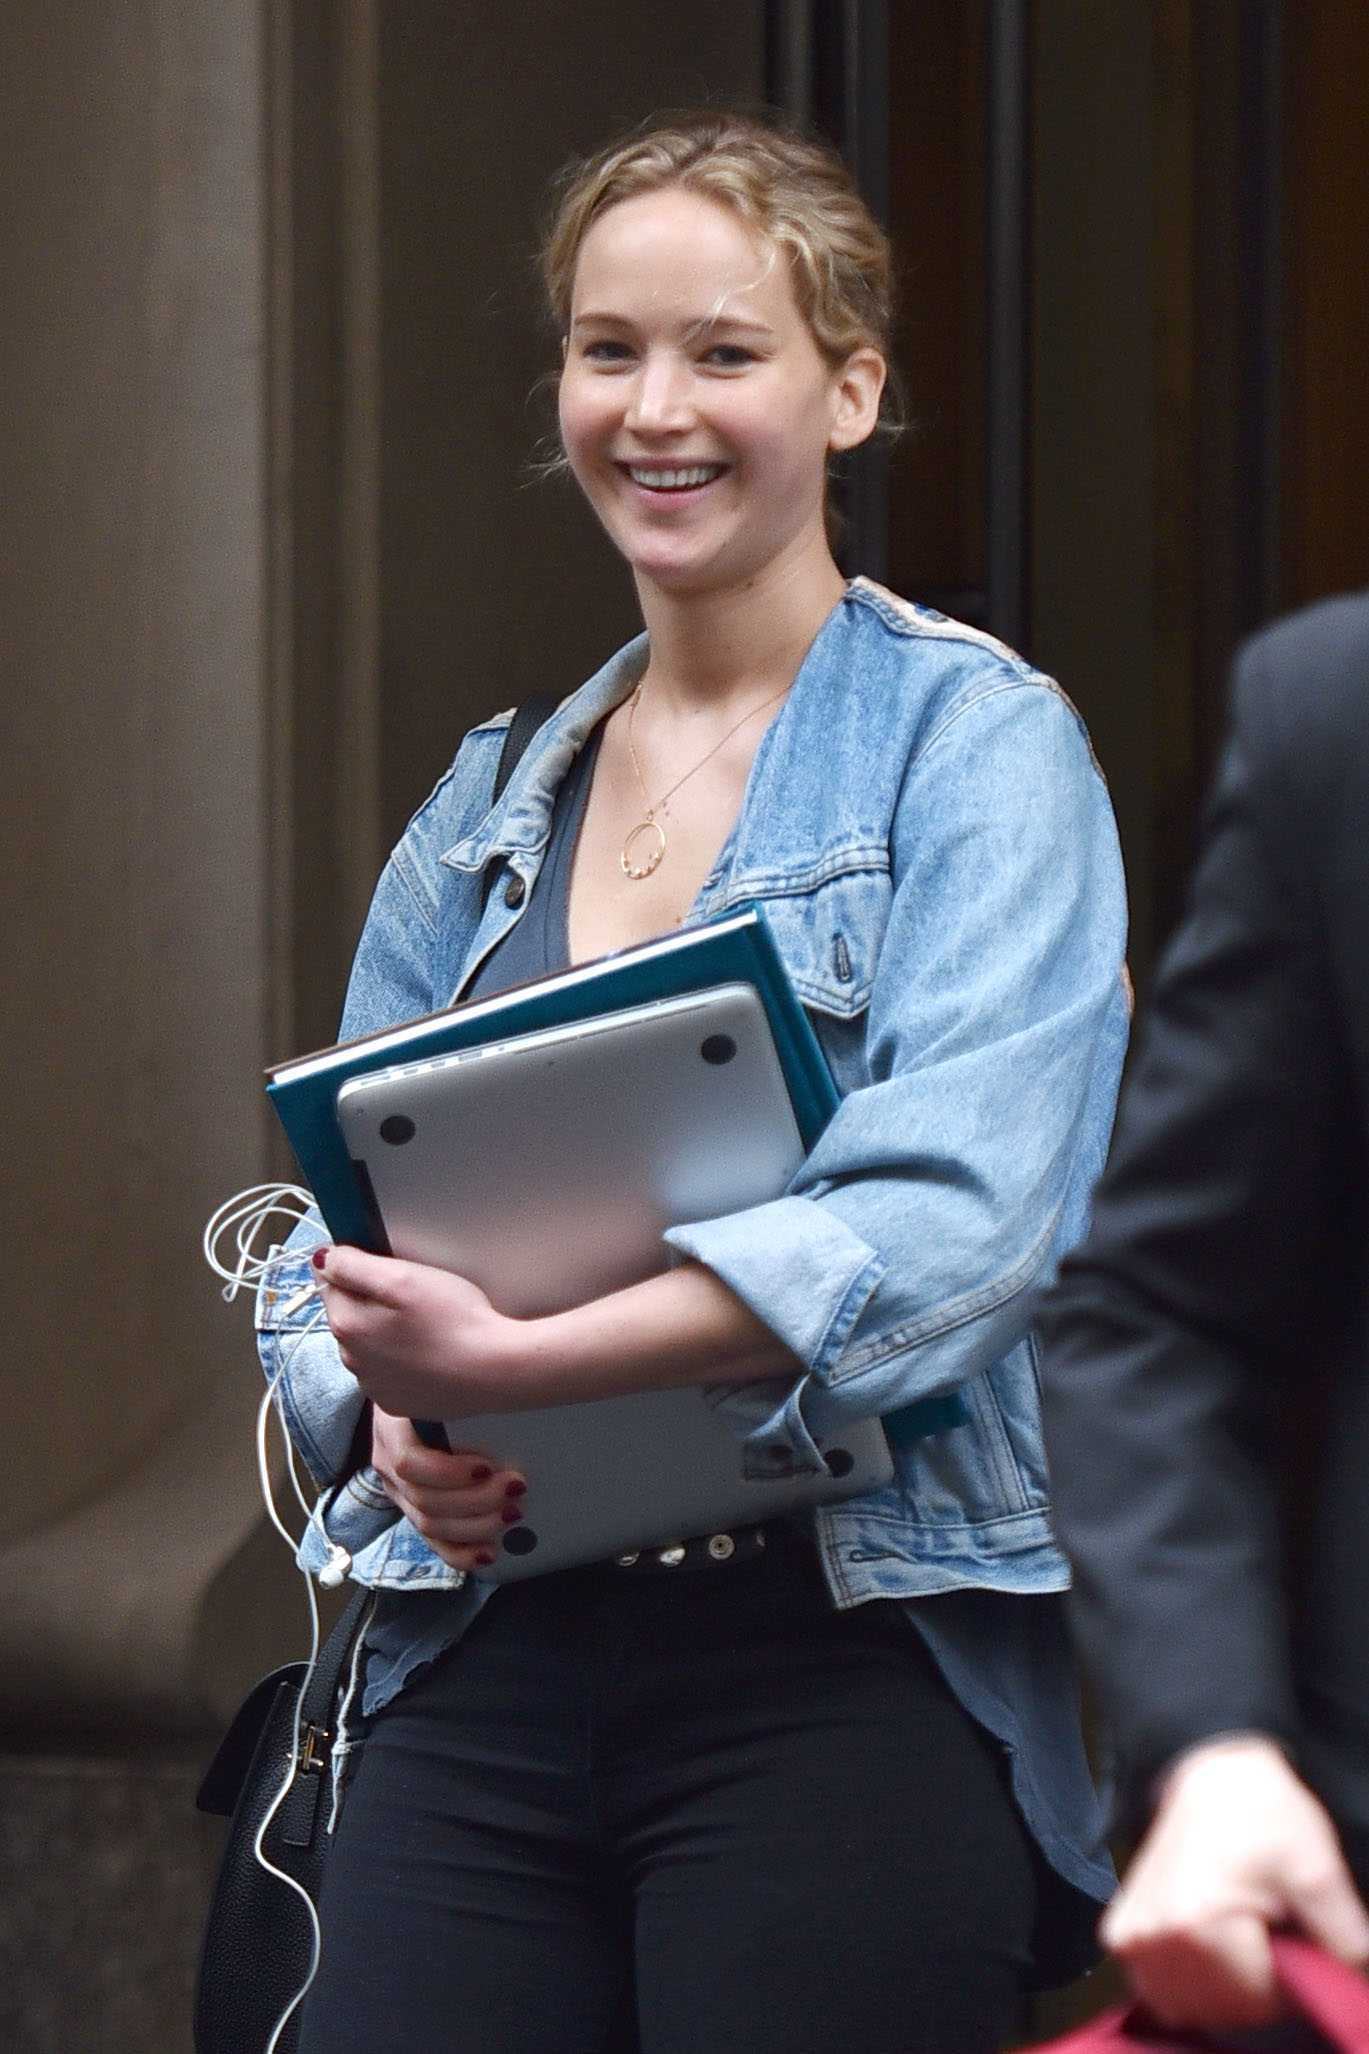 http://jenniferlawrencedaily.com/gallery/albums/userpics/10001/Jennifer_Lawrence_-_Leaving_hotel_in_New_York_on_June_5-01.jpg